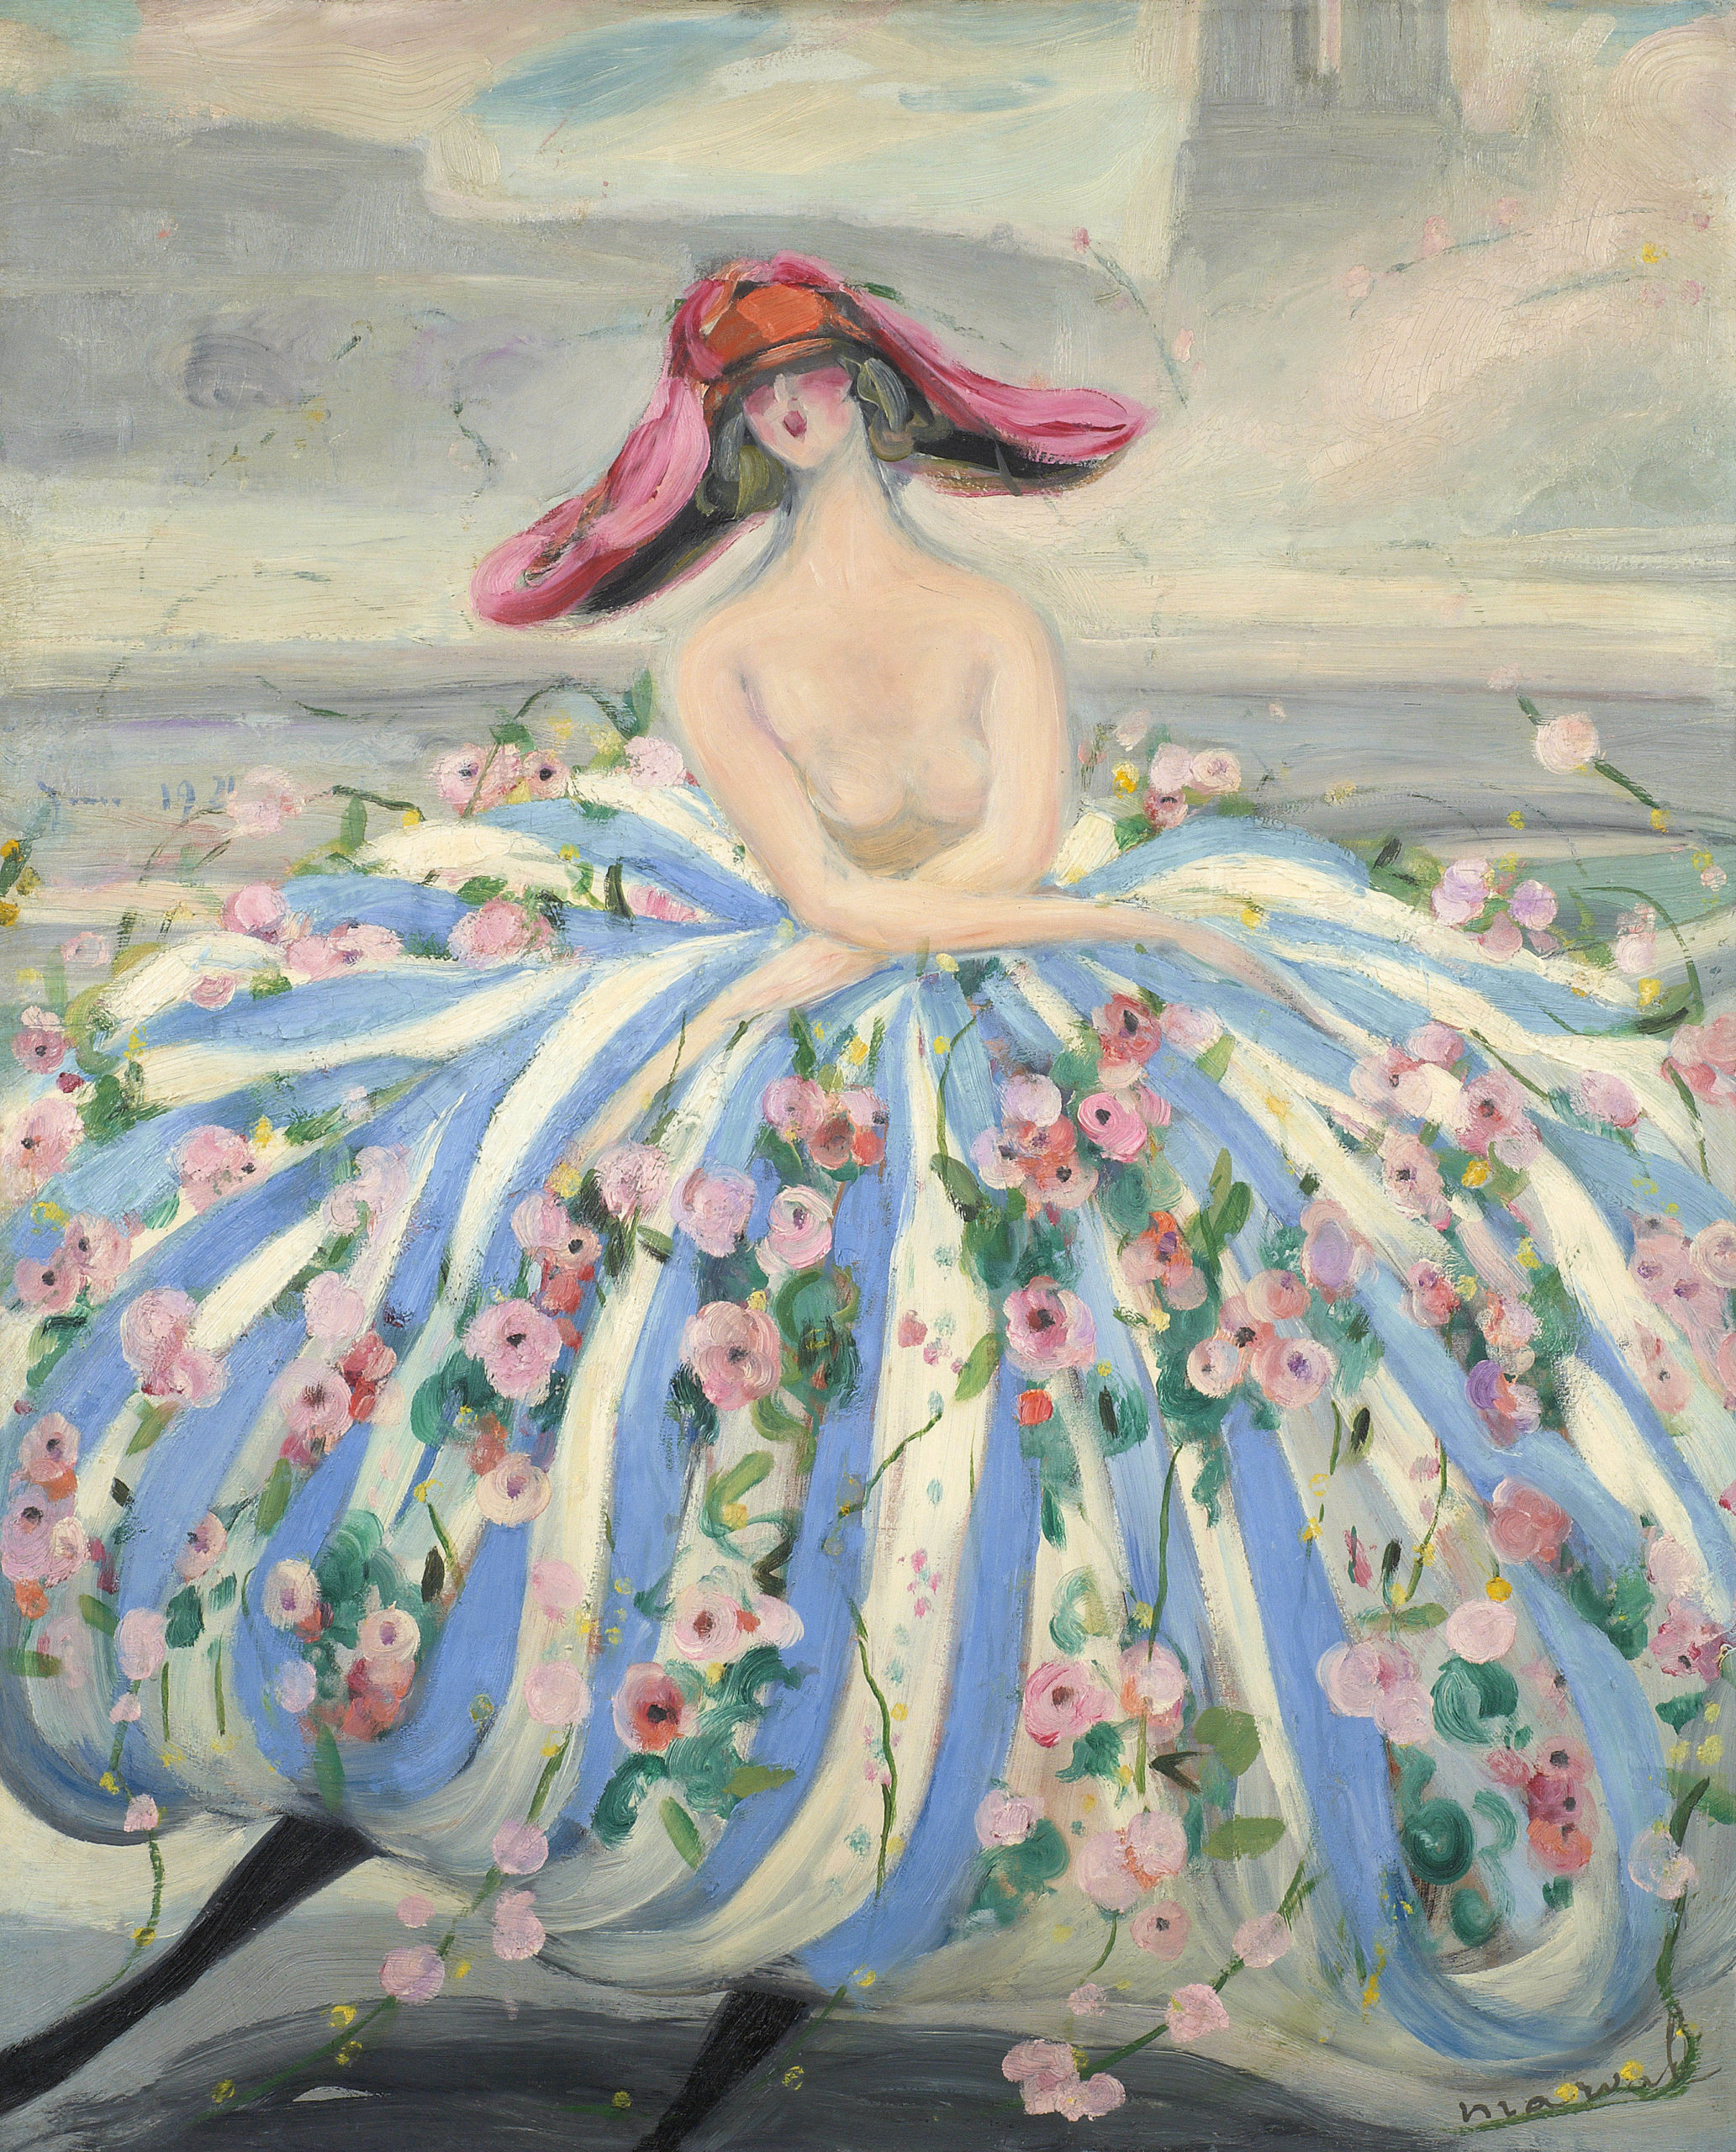 La Danseuse de Notre-Dame, circa 1921. 100 x 81 cm. Collection Raphaël Roux dit Buisson, Paris.